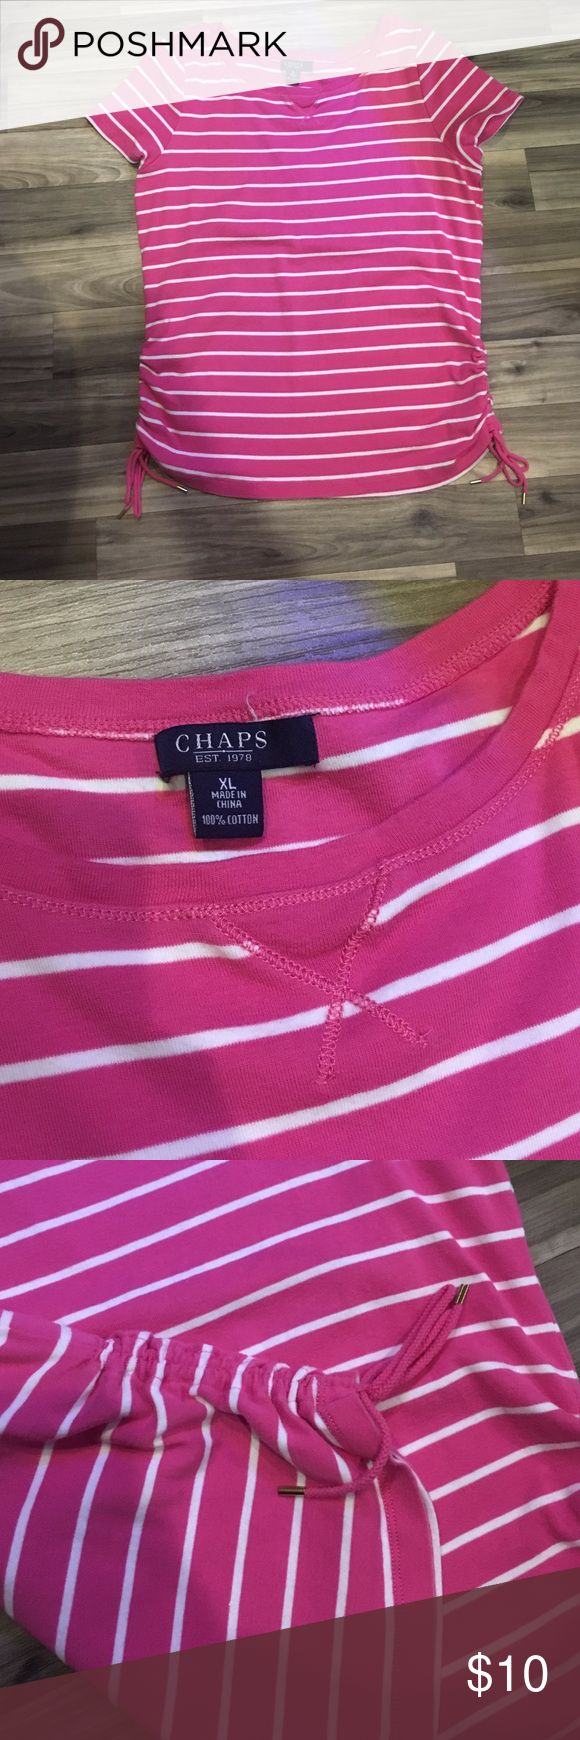 Adorable pink and white striped Chaps shirt! This shirt is in excellent condition and has adorable side detailing with strings as shown in photo. It's a size XL and true to size. 100% cotton and just simply adorable. Chaps Tops